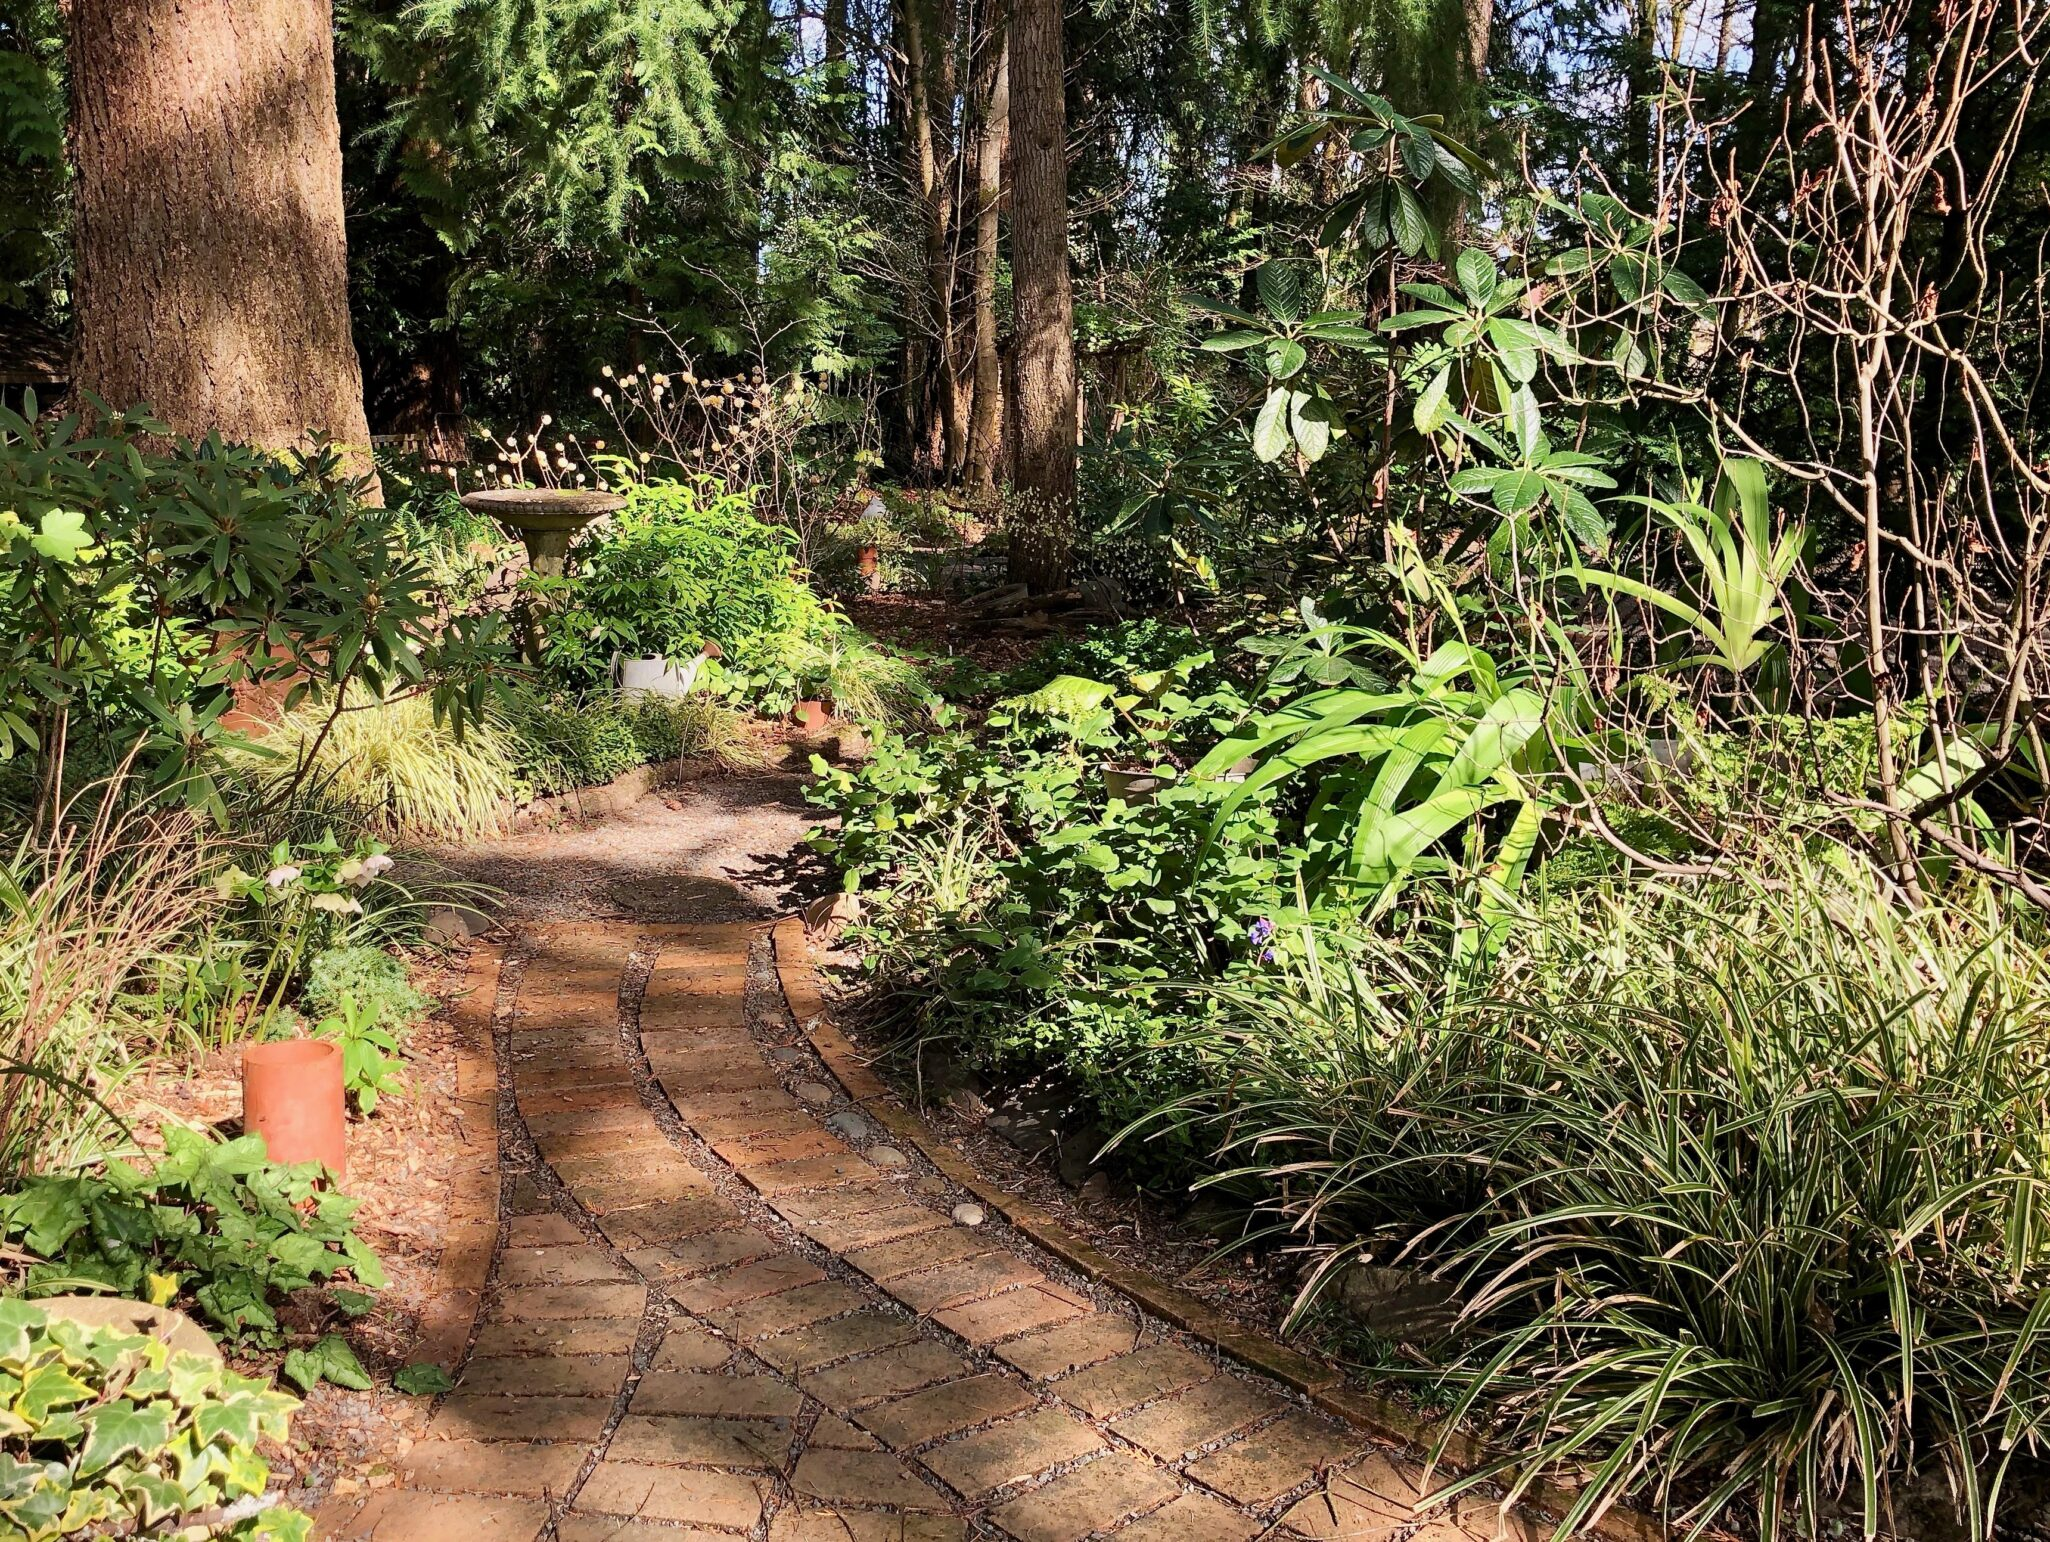 A Sister's Creation: The Lovely Heartwood Garden